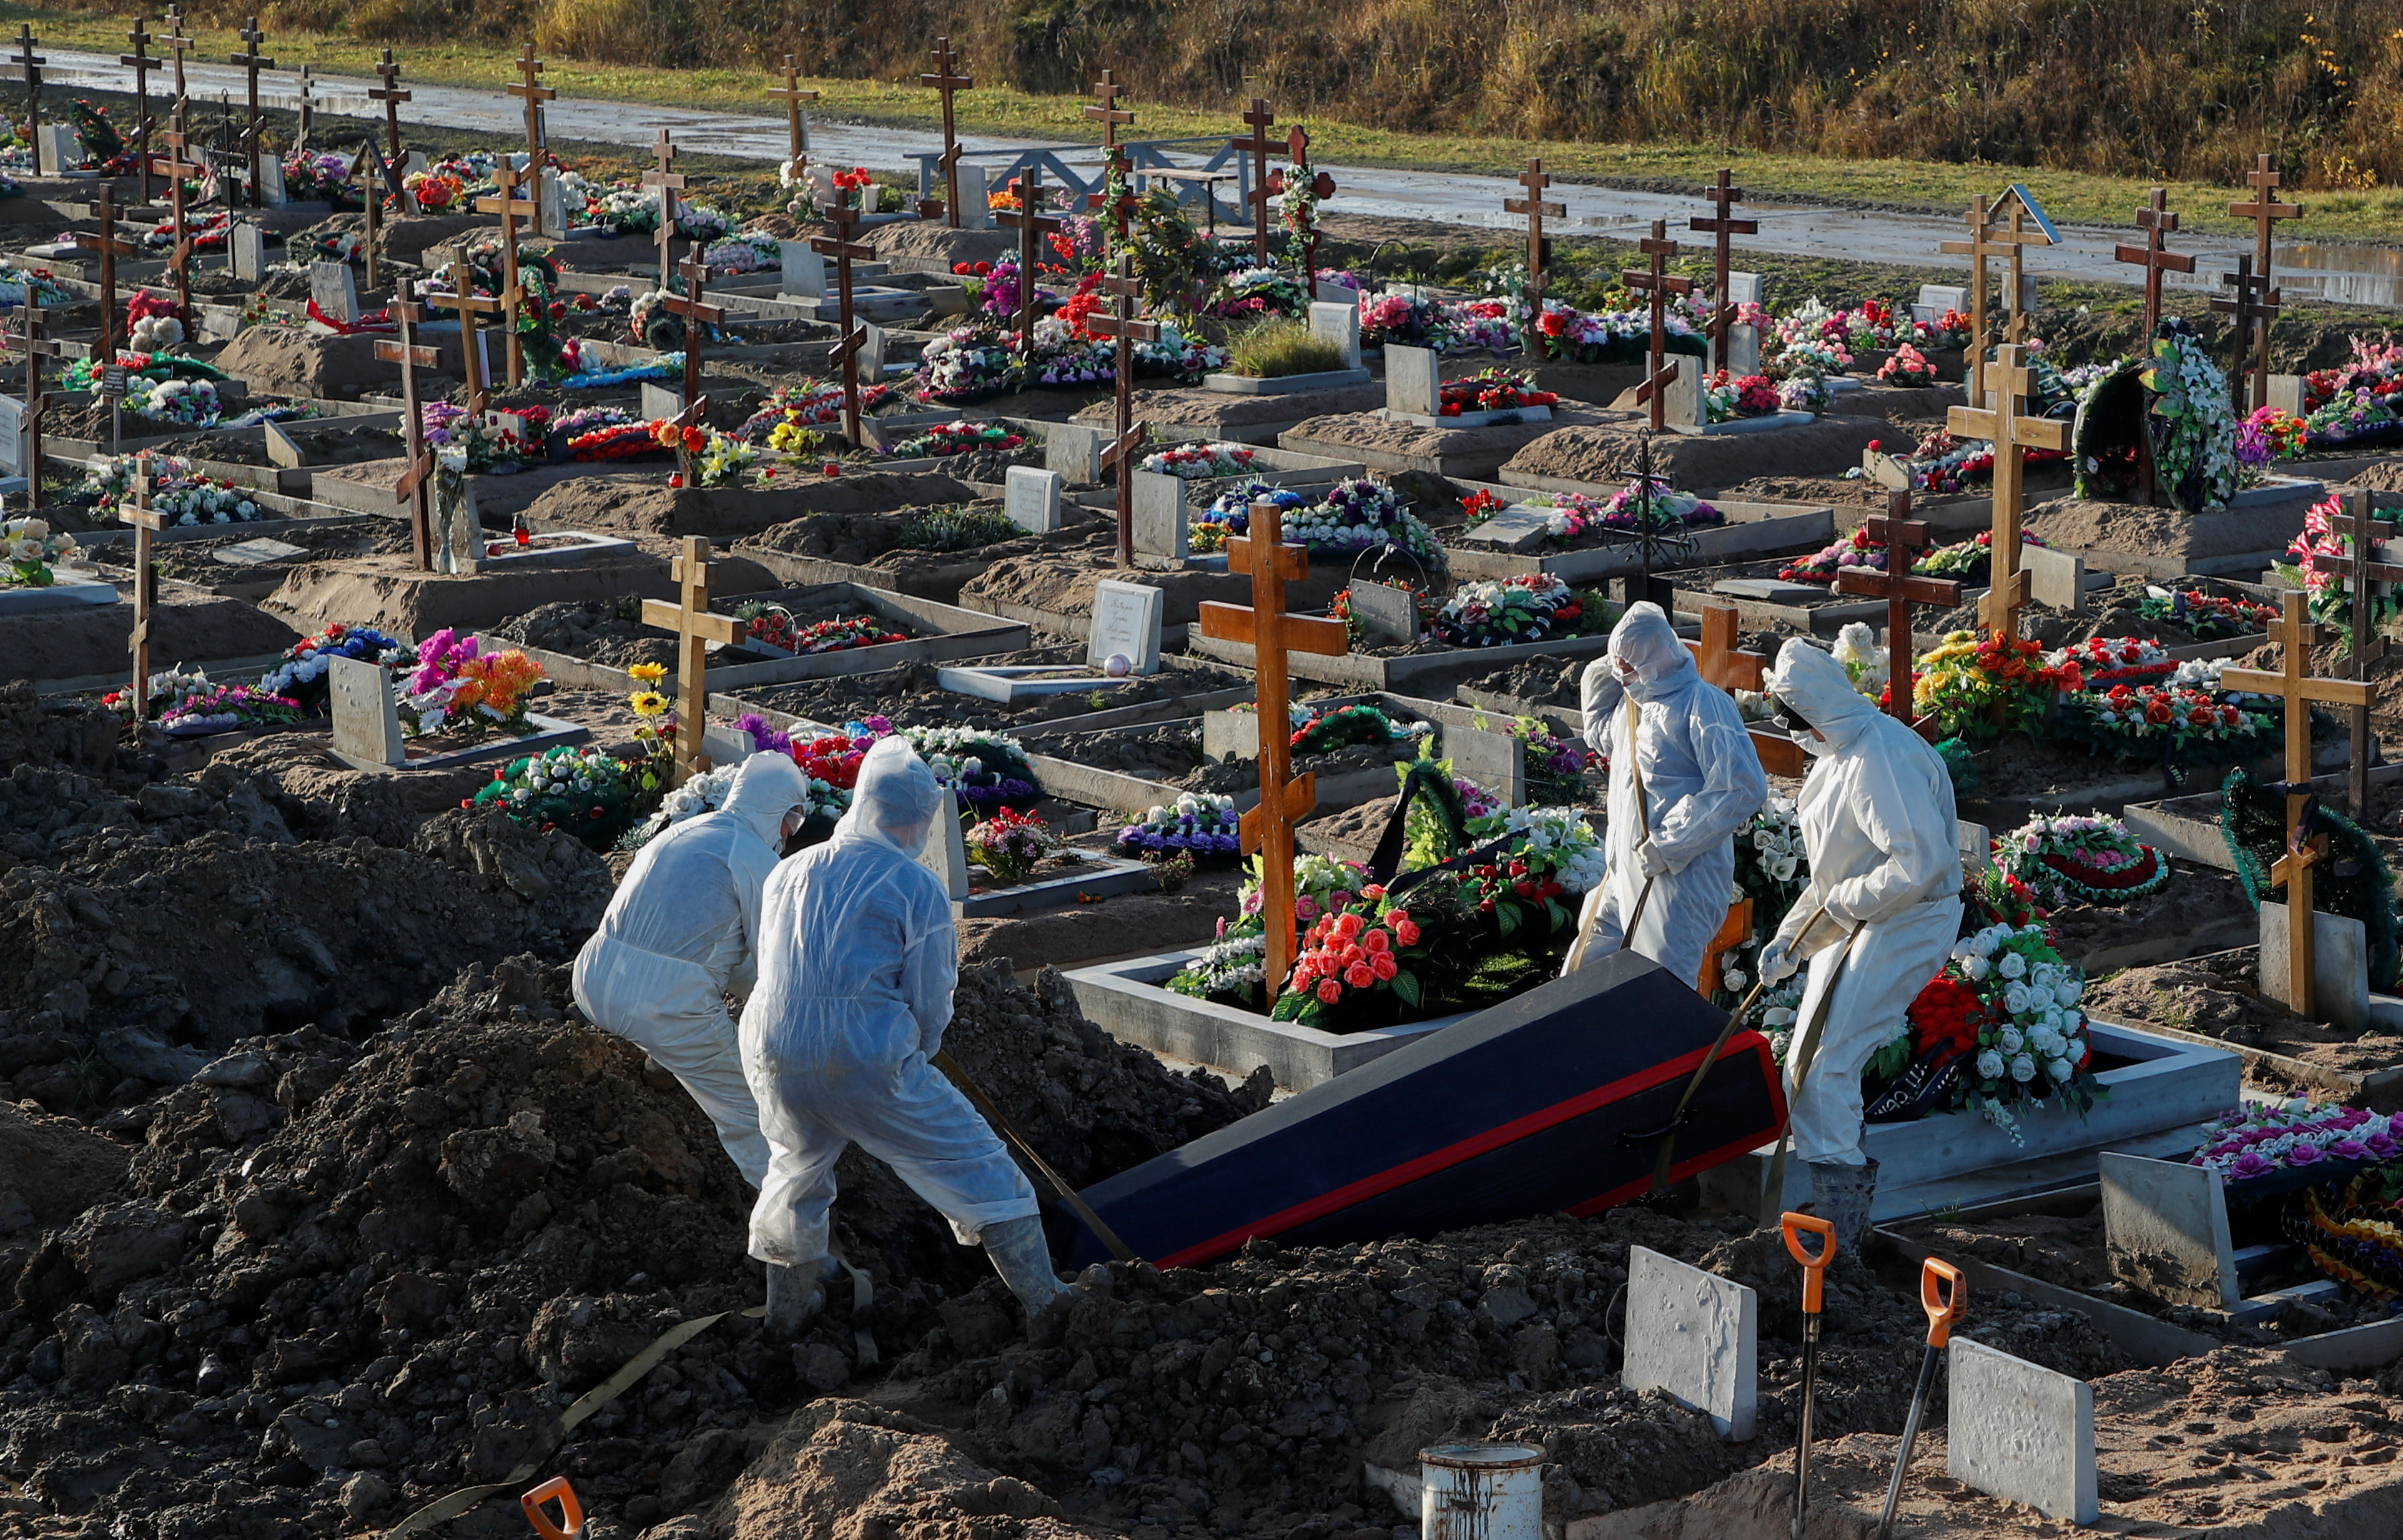 Grave diggers wearing personal protective equipment (PPE) lower a coffin while burying a person in the special purpose section of a graveyard for the coronavirus disease (COVID-19) victims on the outskirts of Saint Petersburg, Russia November 6, 2020. REUTERS/Anton Vaganov